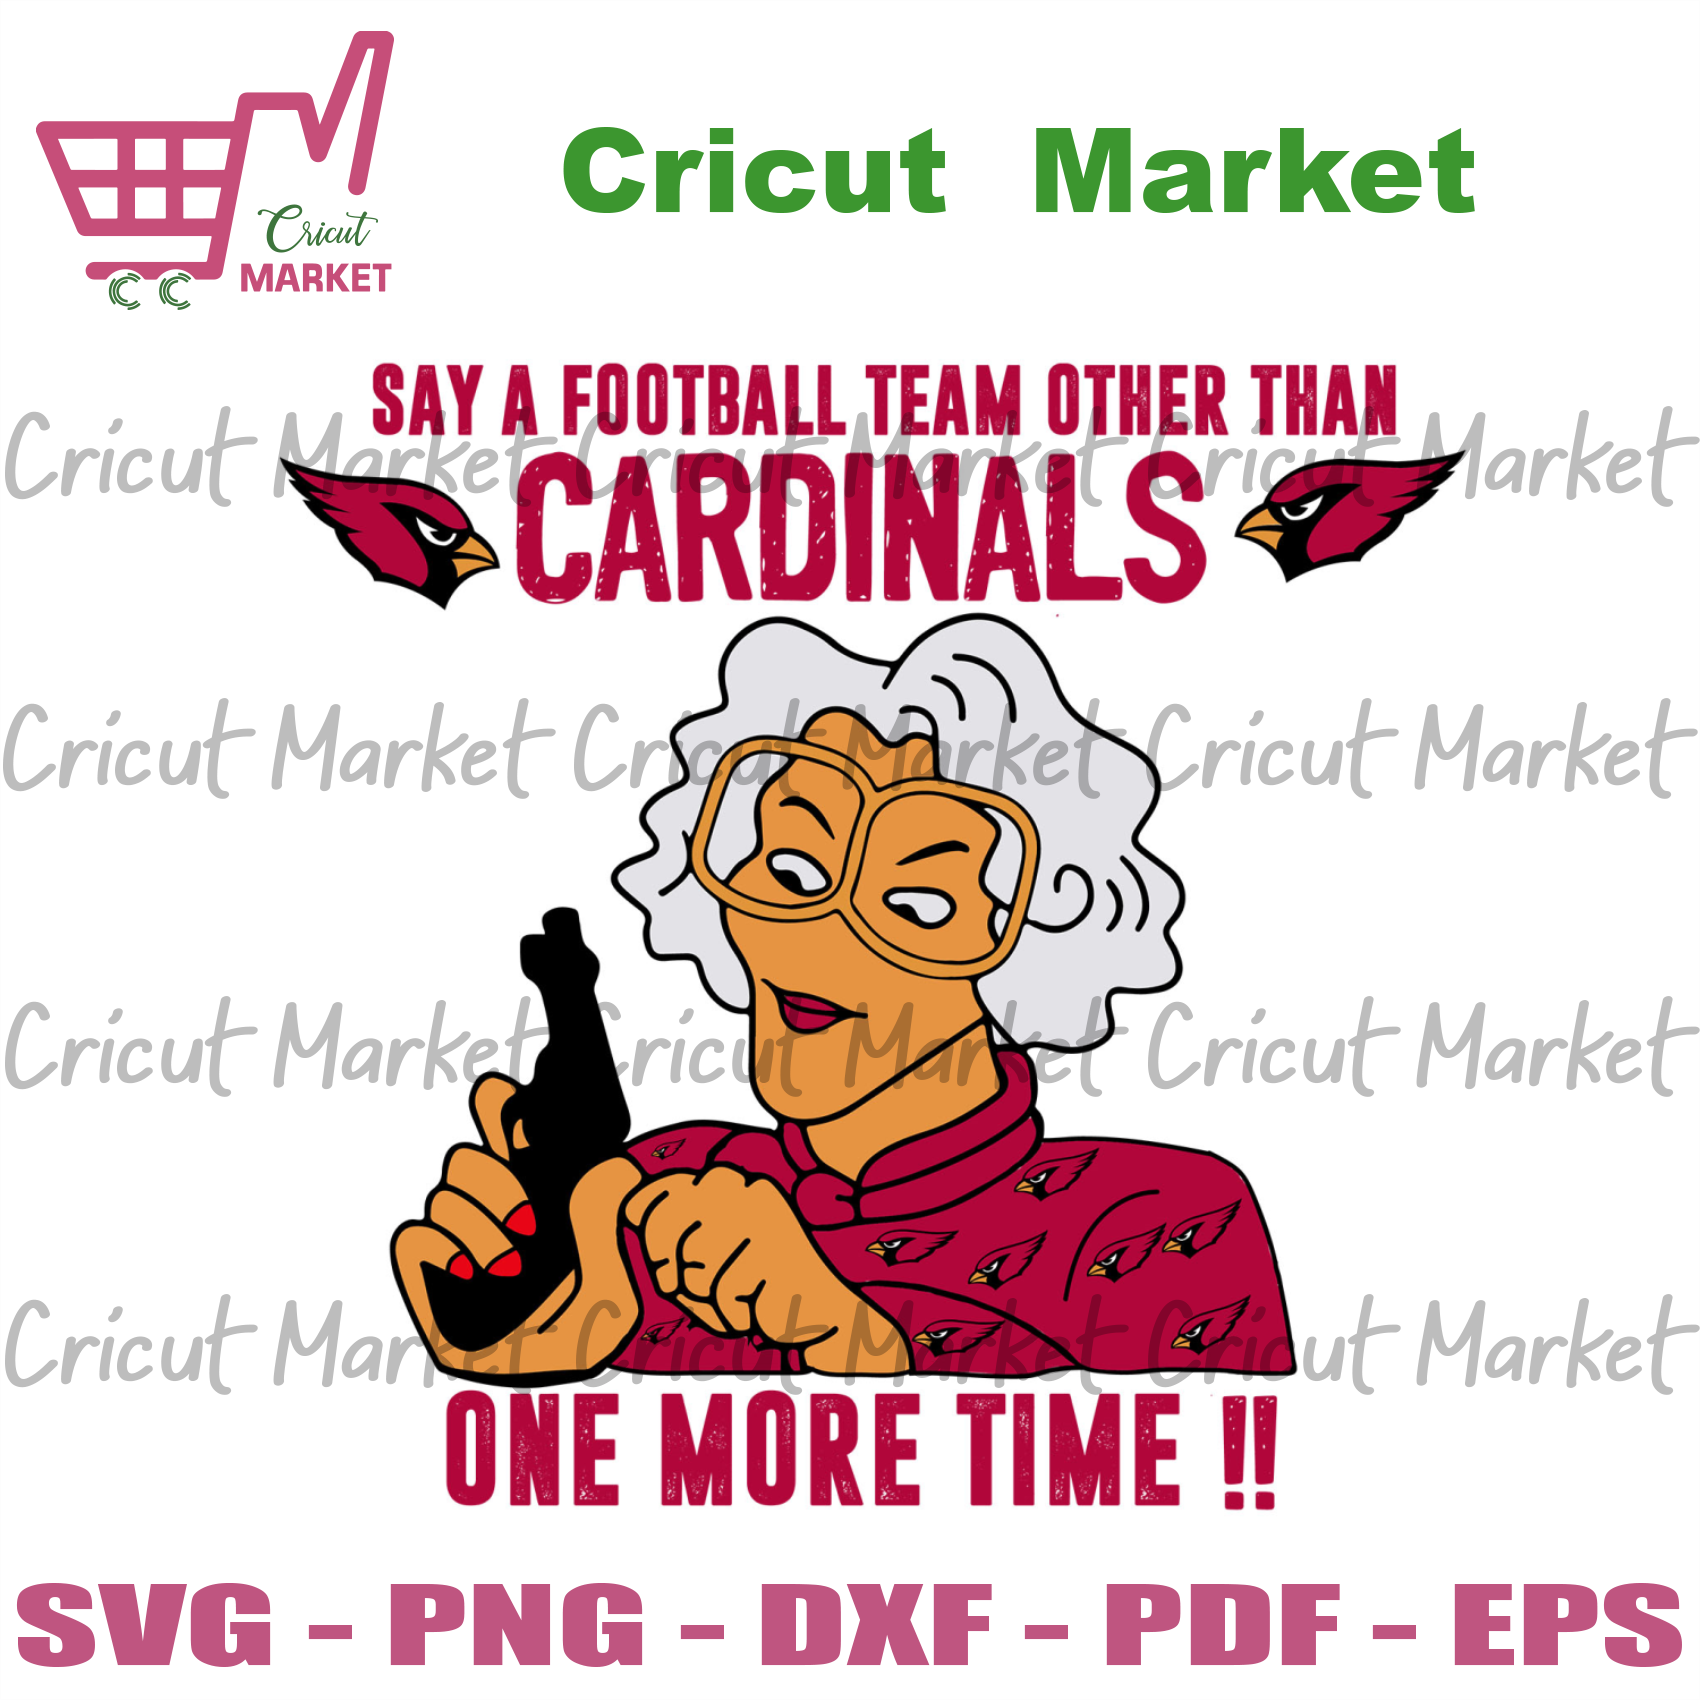 Madea Say A Football Team Other Than Cardinals Svg, Sport Svg, Madea Svg, Arizona Cardinals Svg, Cardinals Svg, Cardinals Madea Svg, Cardinals Fans Svg, Cardinals Football Svg, Arizona Cardin